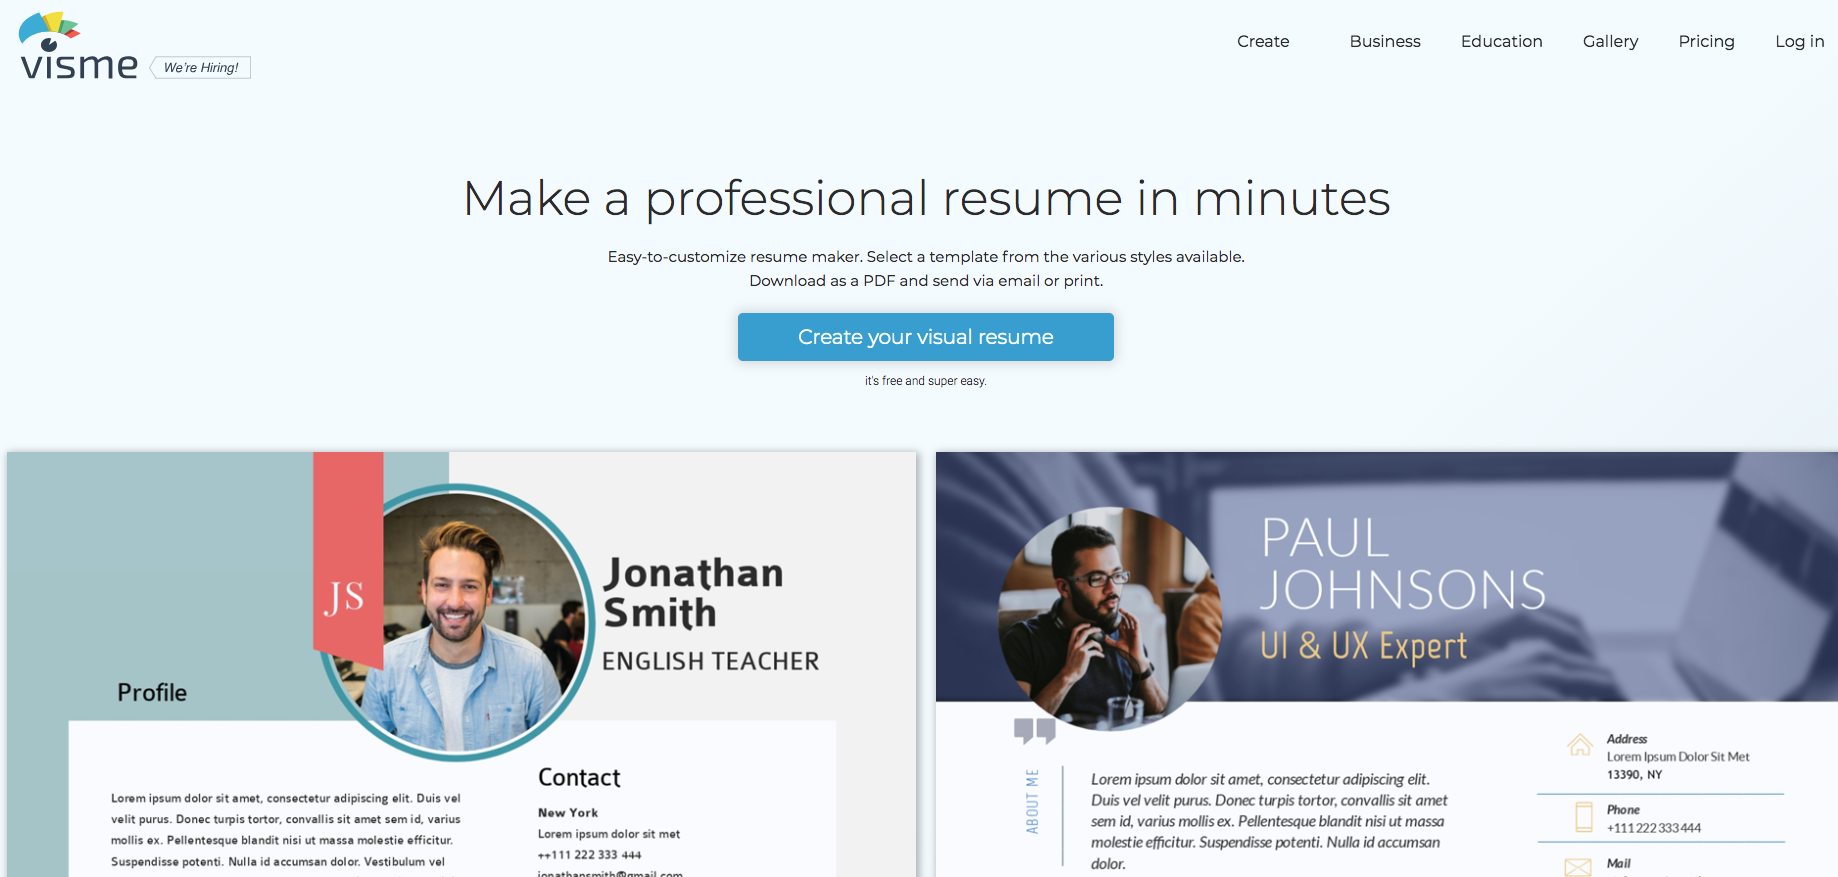 visme resume maker